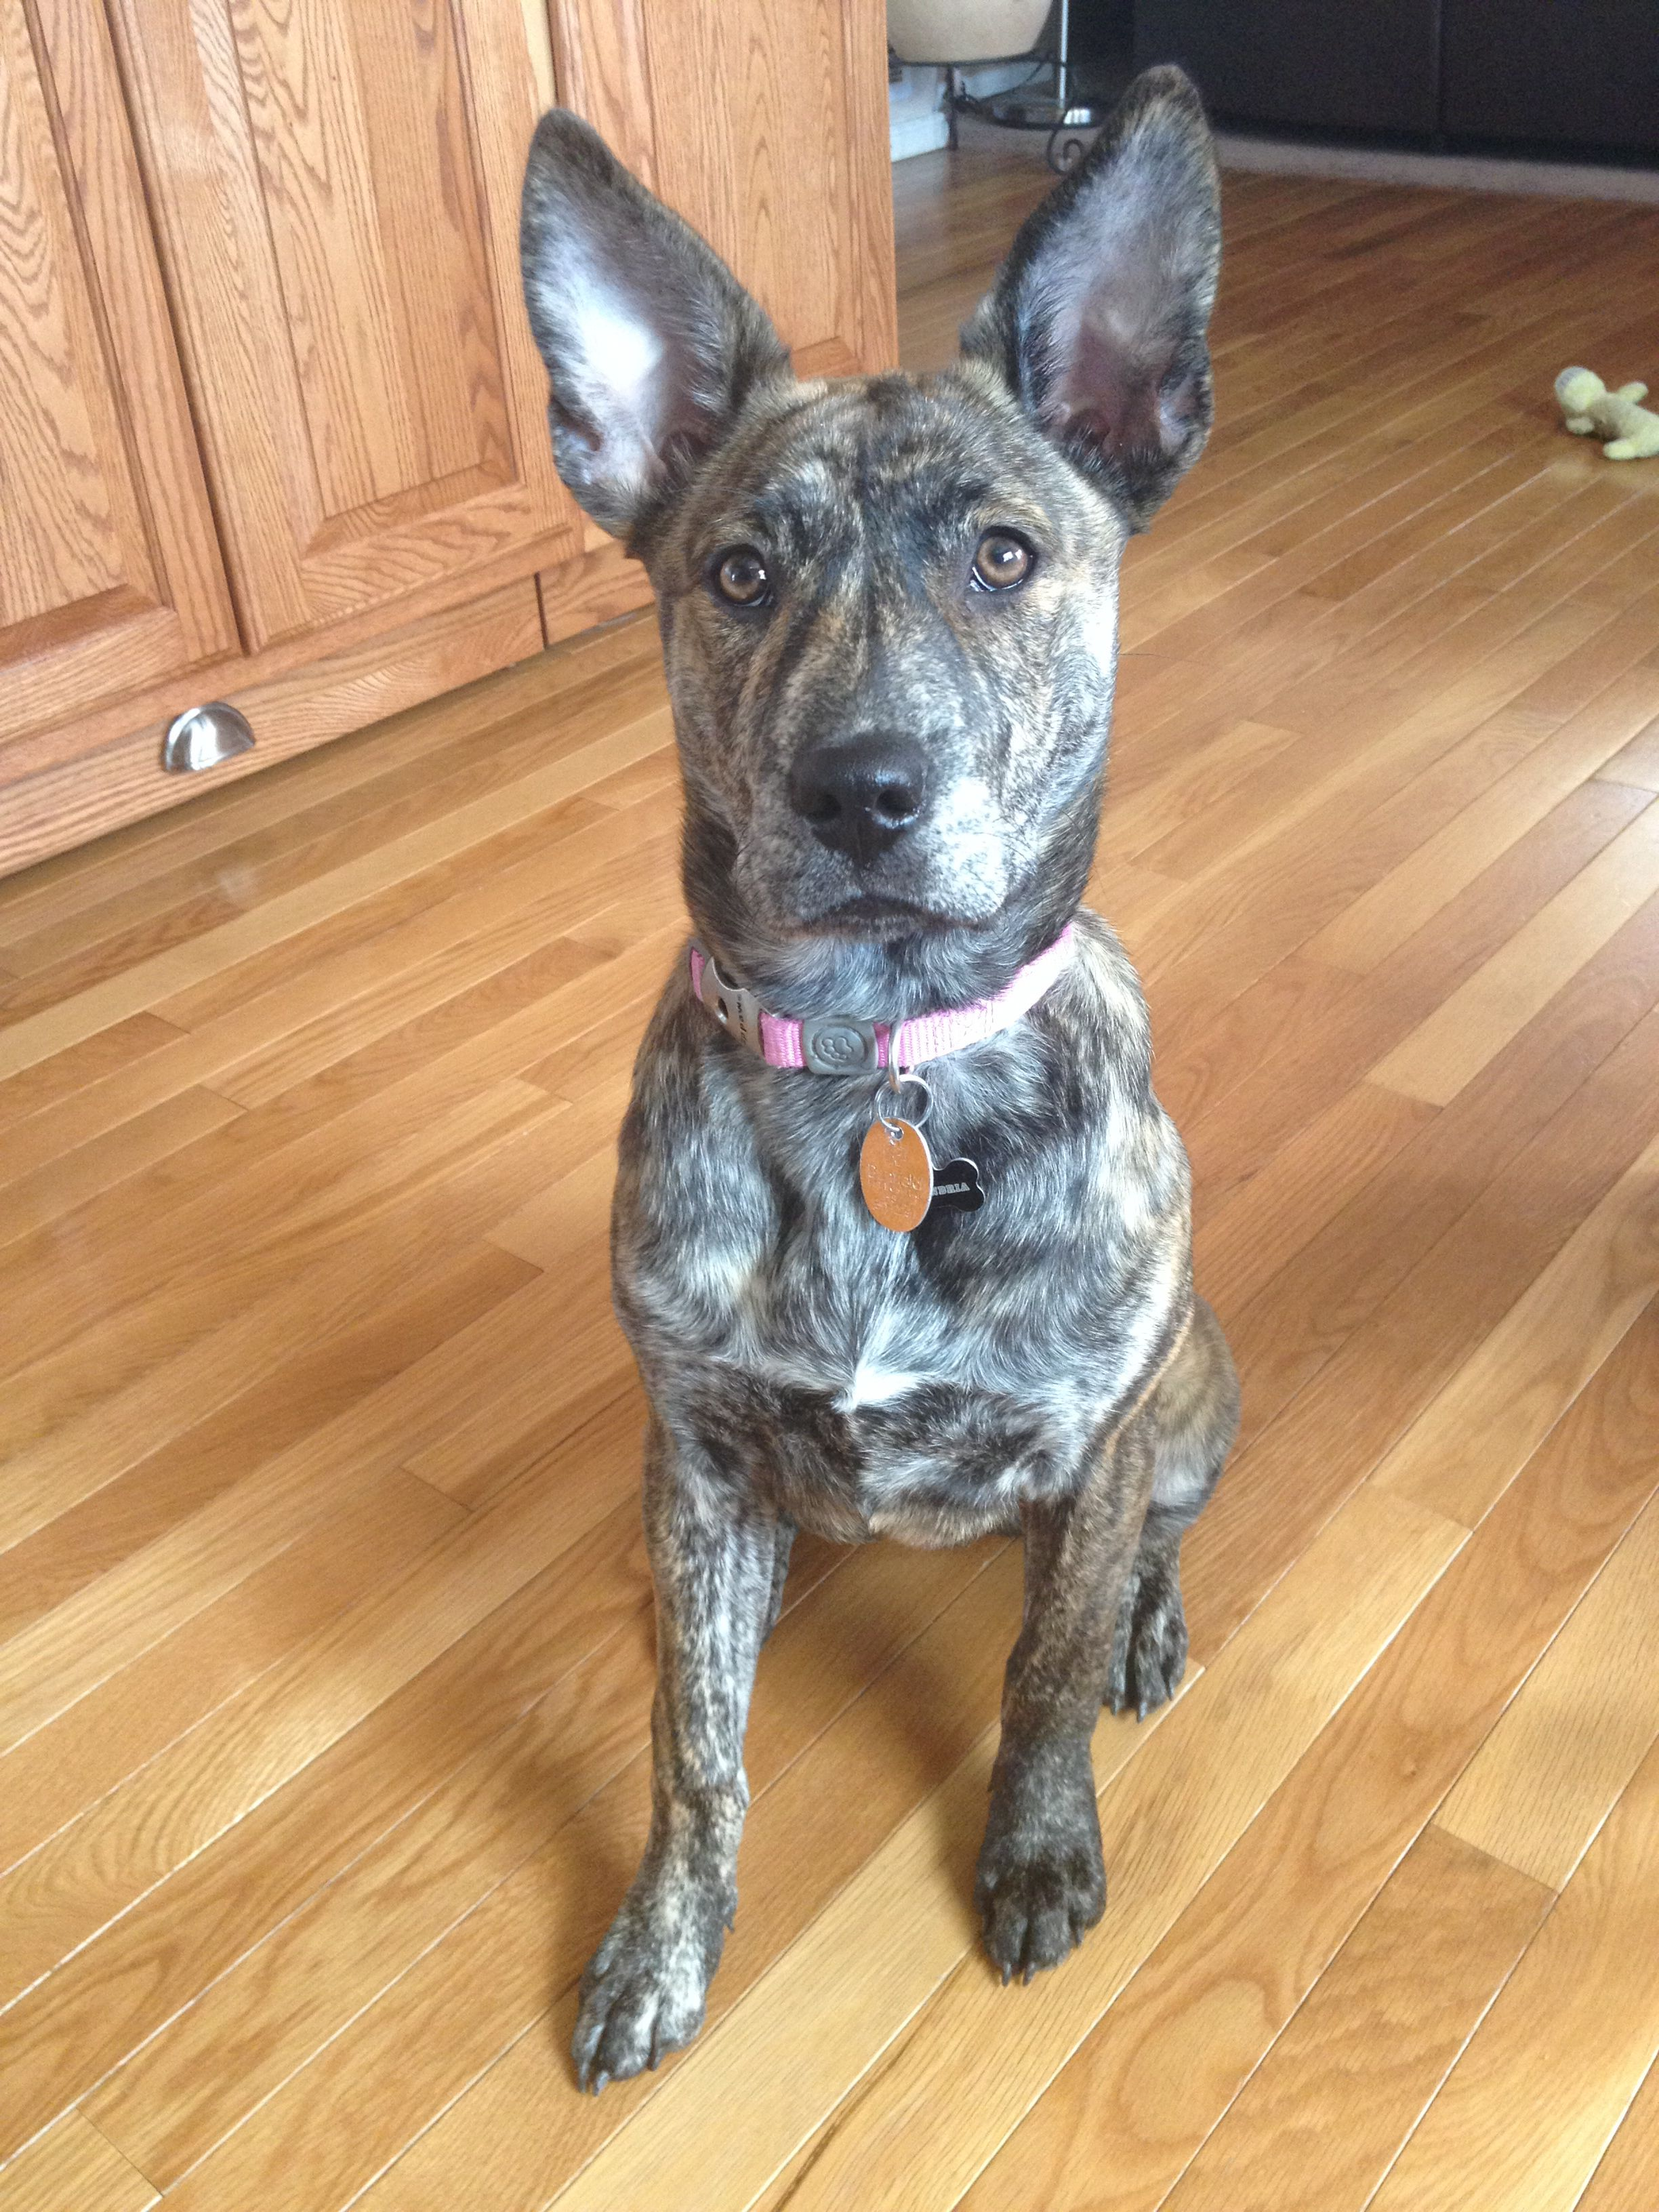 German Shepherd Husky Pitbull Mix 5 Months Old Brindle Puppy Looks Like My Dog Grey German Shepherd Mix Pitbull Terrier Pitbulls